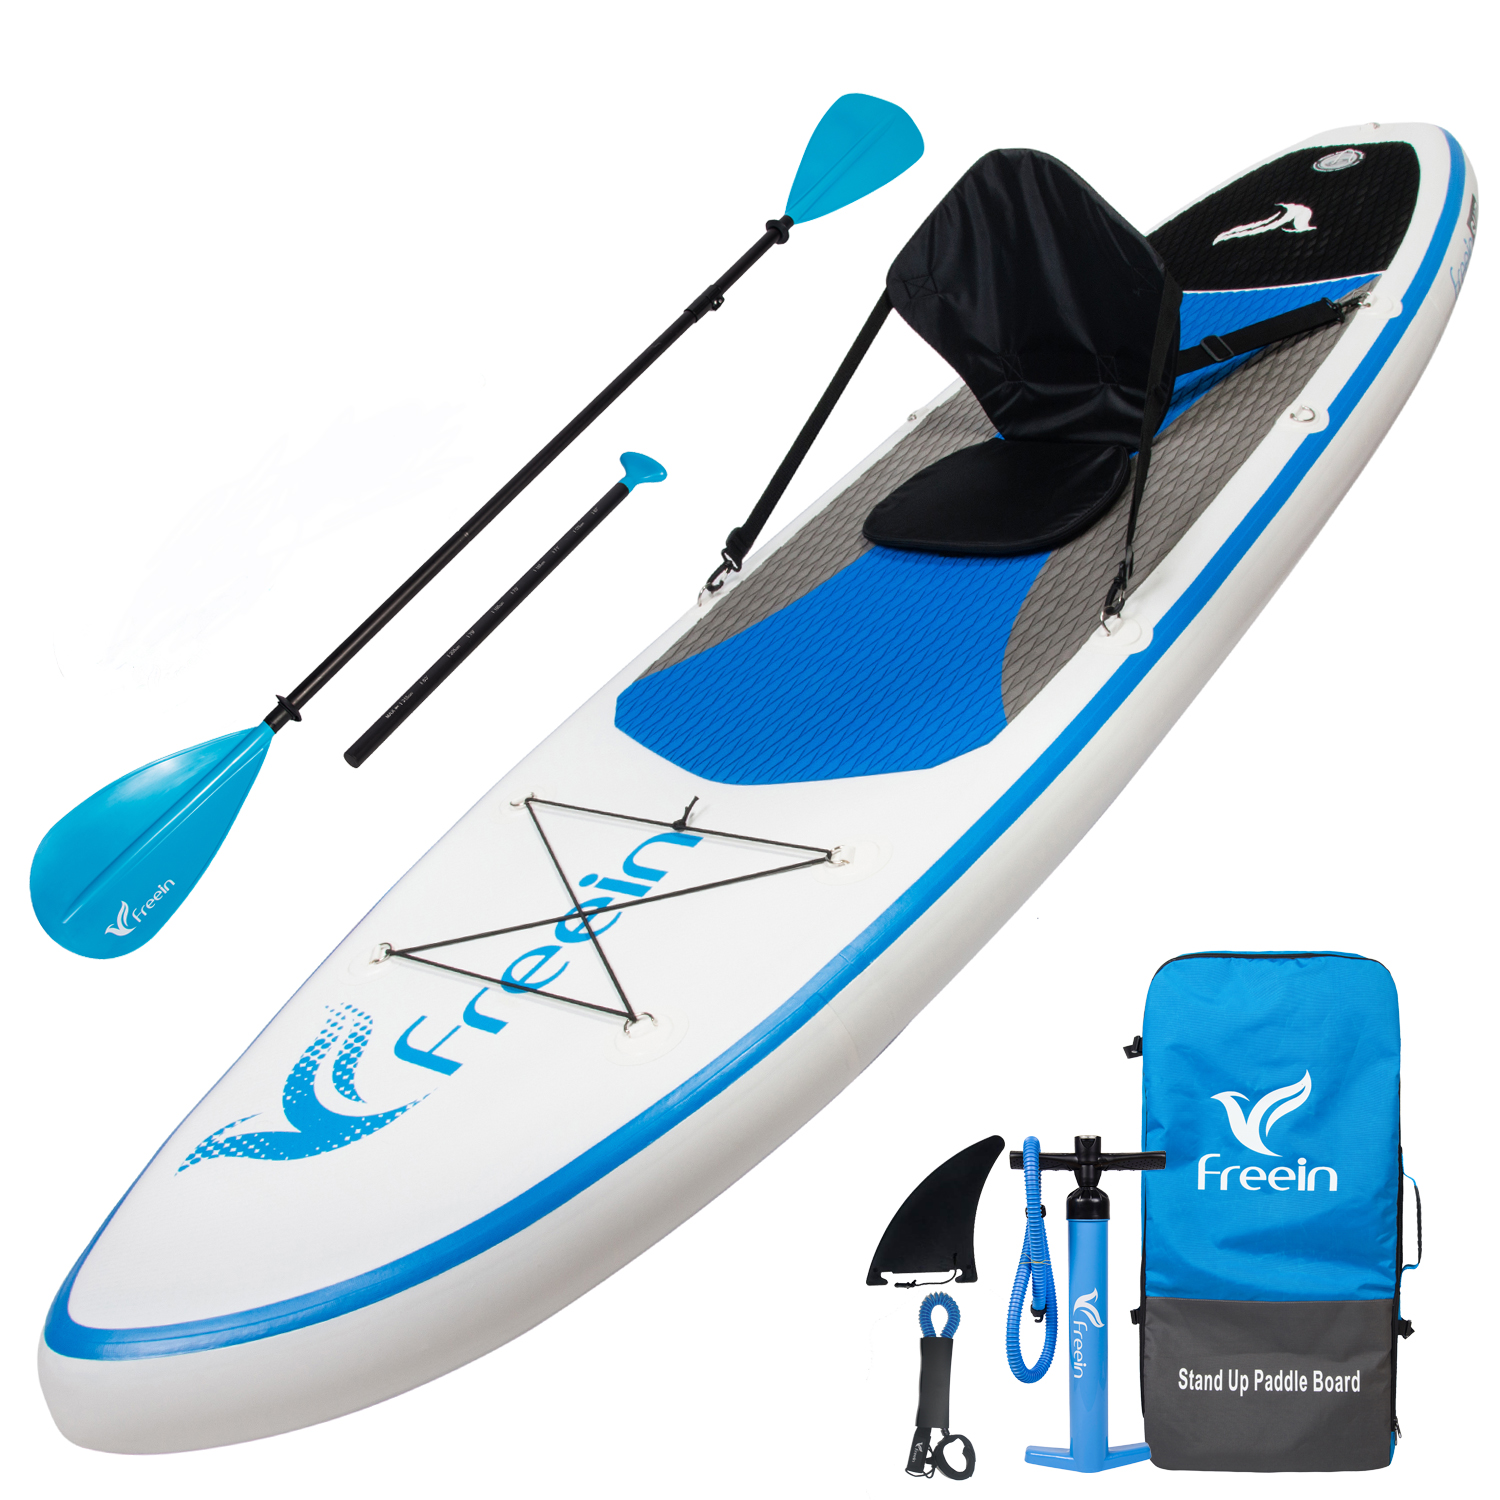 Details about Freein Stand Up Paddleboard Inflatable SUP W/10' Long With  Kayak Conversion Kit